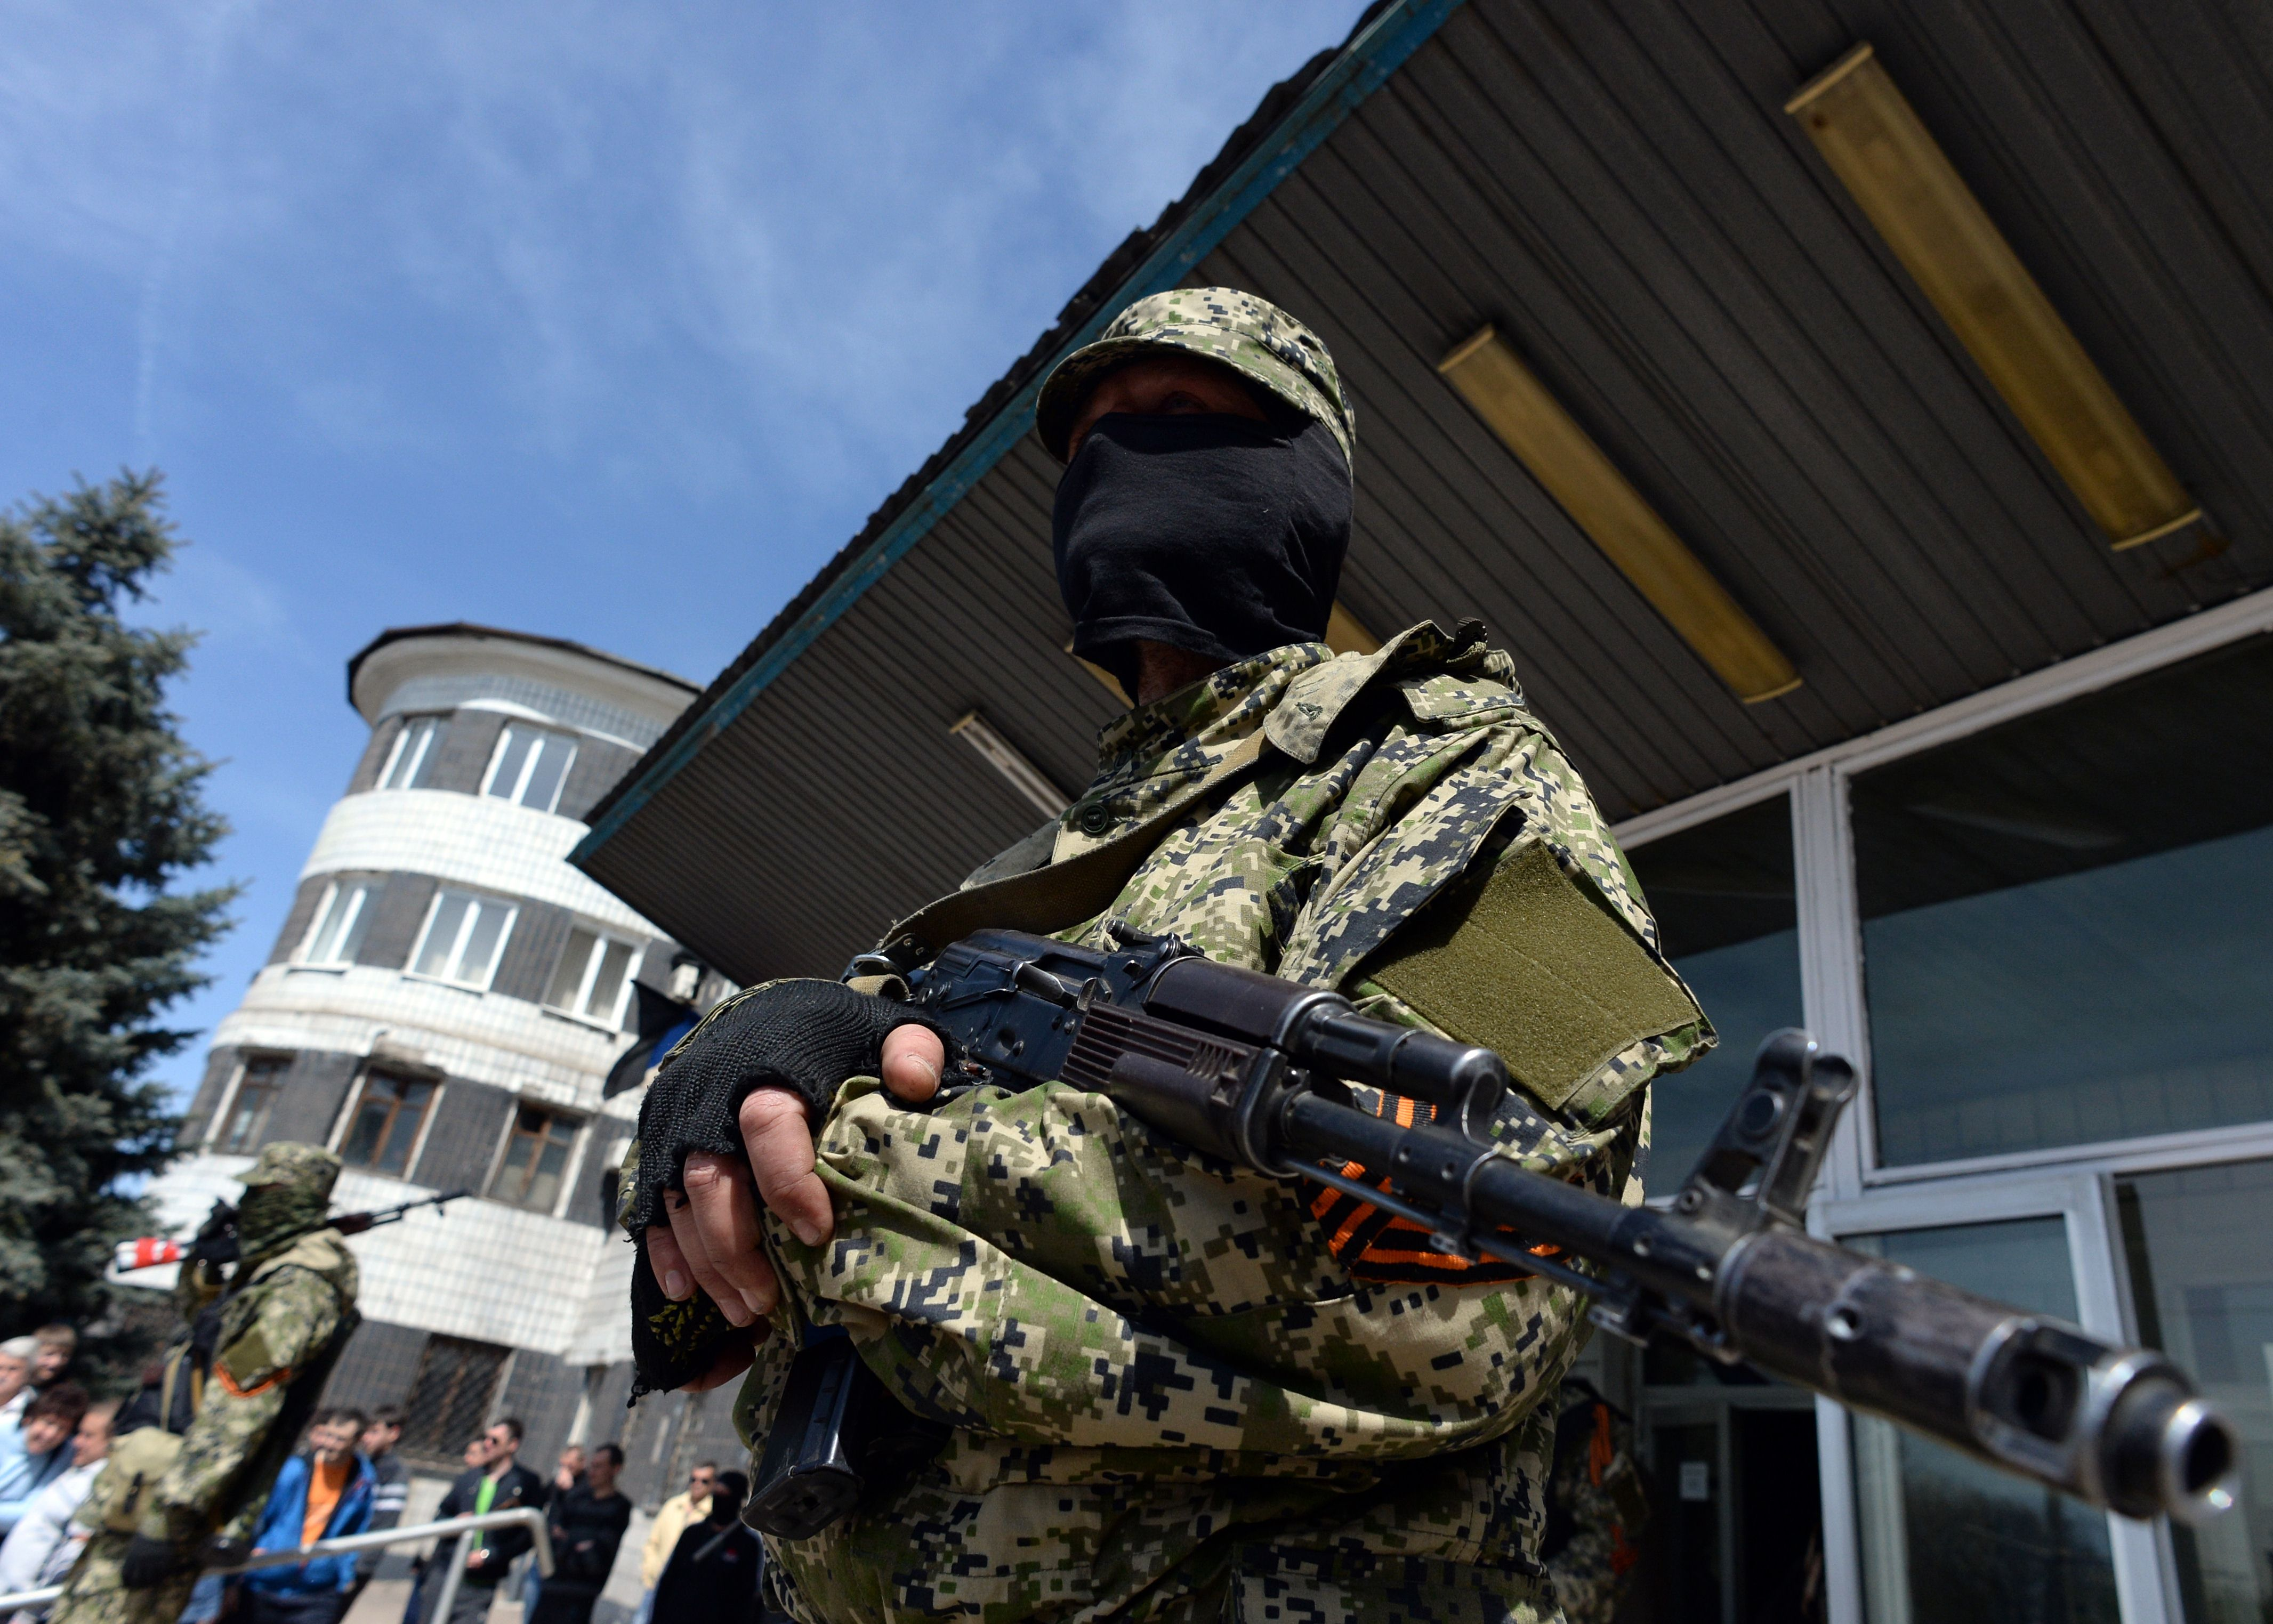 A pro-Russian armed man in military fatigues stands guard outside a regional administration building seized in the night by pro-Russian separatists, in the eastern Ukrainian city of Konstantinovka, on April 28, 2014. The United States moved to impose fresh sanctions against Russia today over the crisis in Ukraine, as pro-Kremlin gunmen seized another town in the east, further escalating tensions.  (AFP PHOTO / VASILY MAXIMOV)